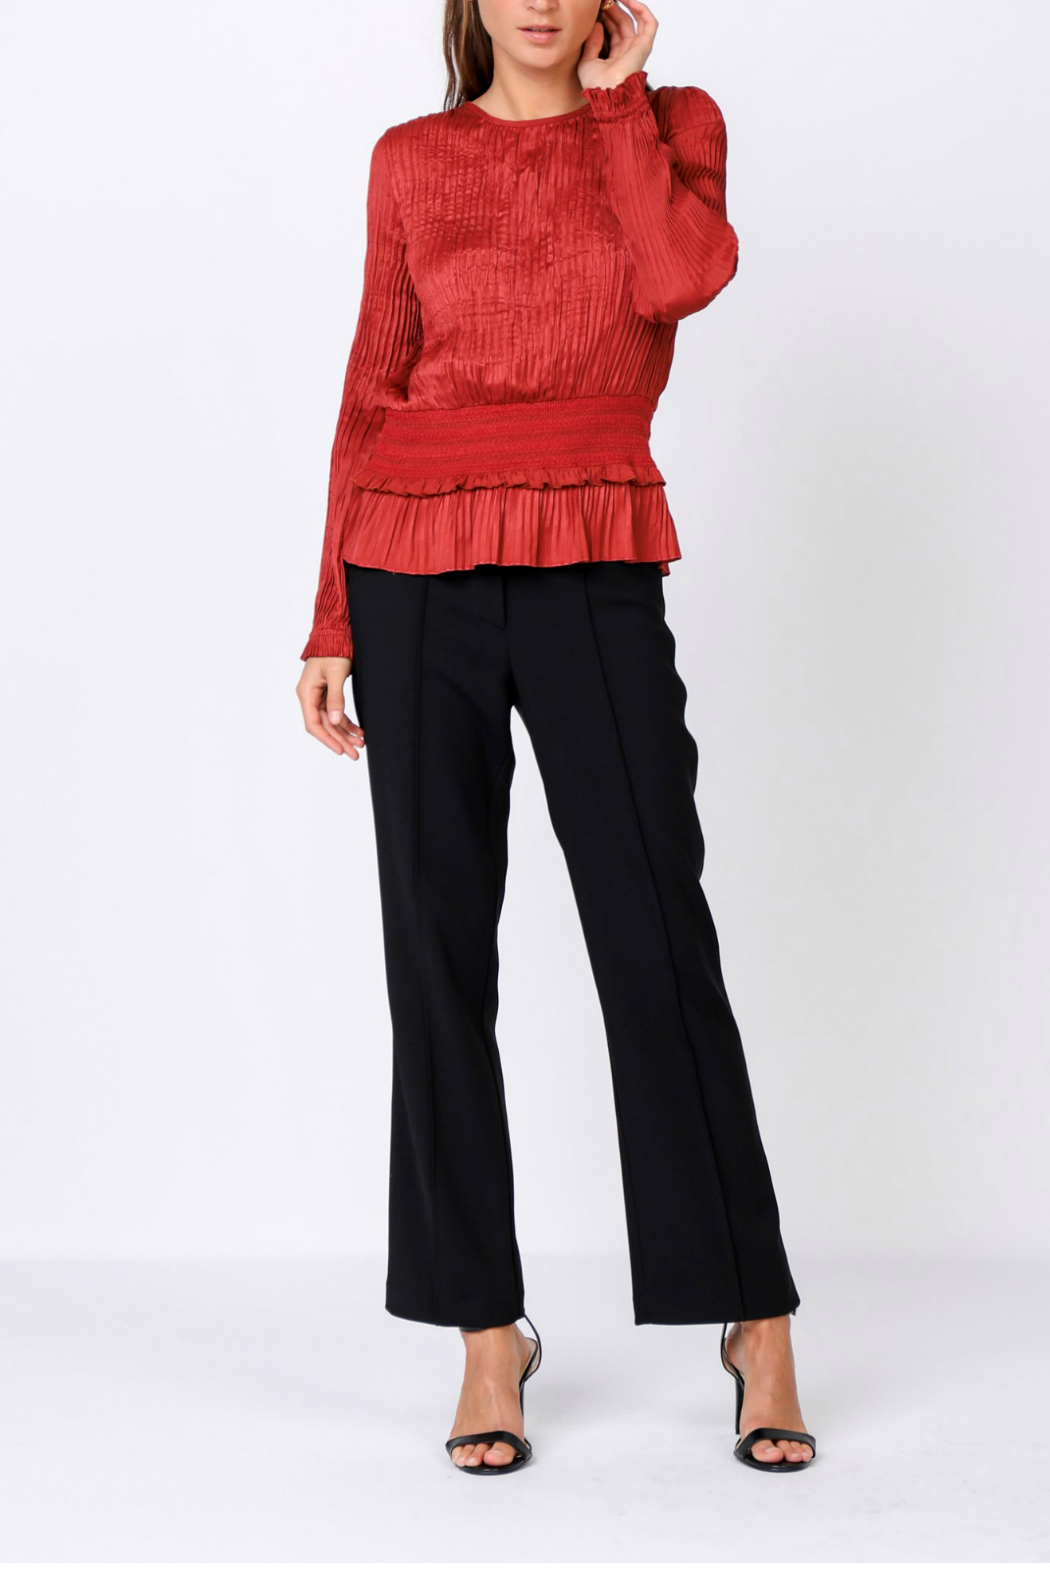 Current Air Pleated top with smocked waist - Front Cropped Image